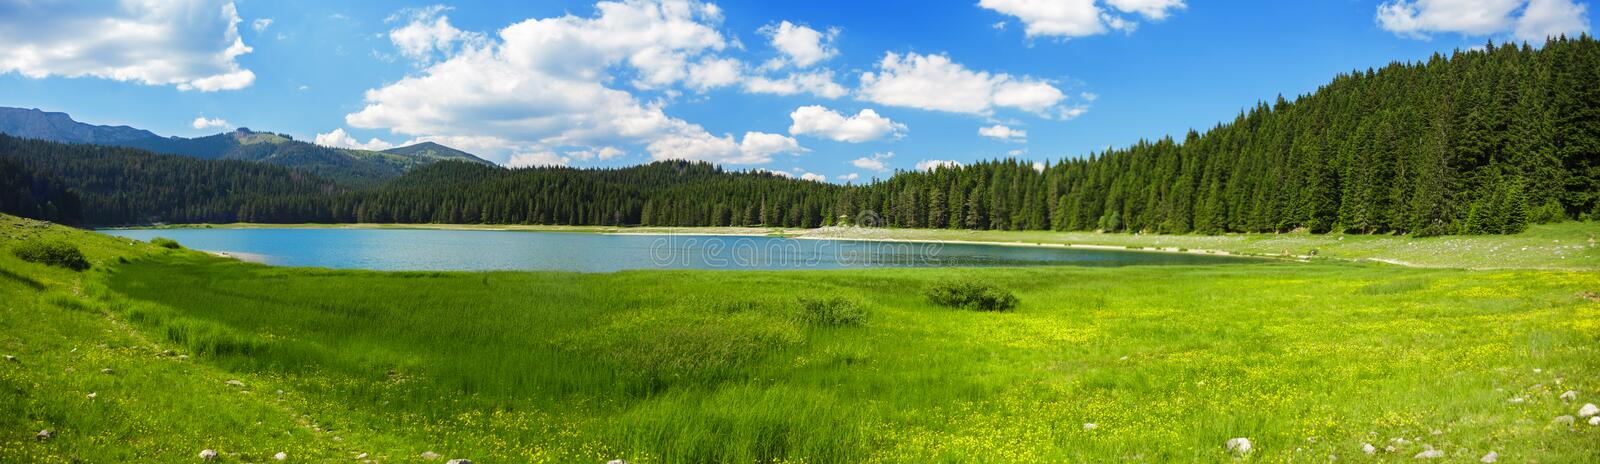 Landscape near mountain lake royalty free stock photography